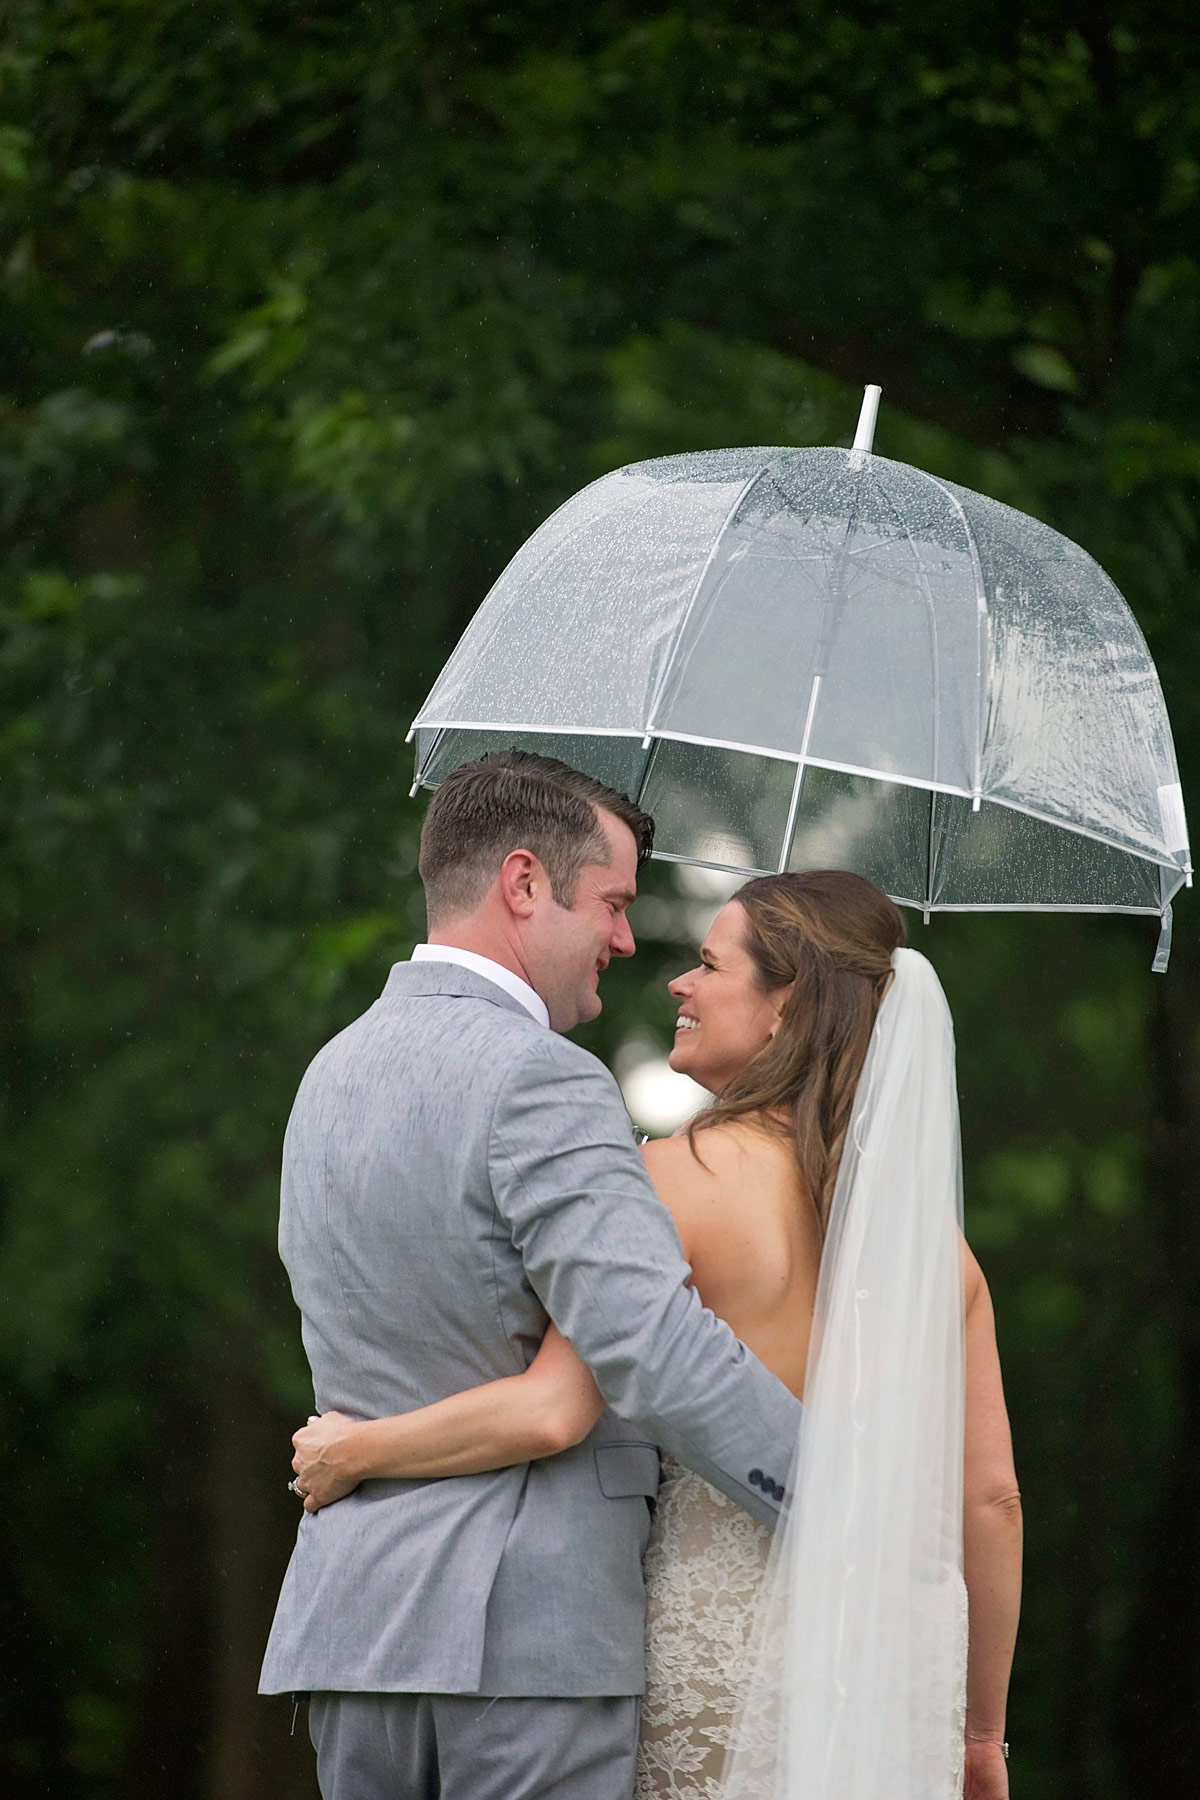 bride and groom walk away from camera under clear umbrella, looking at one another